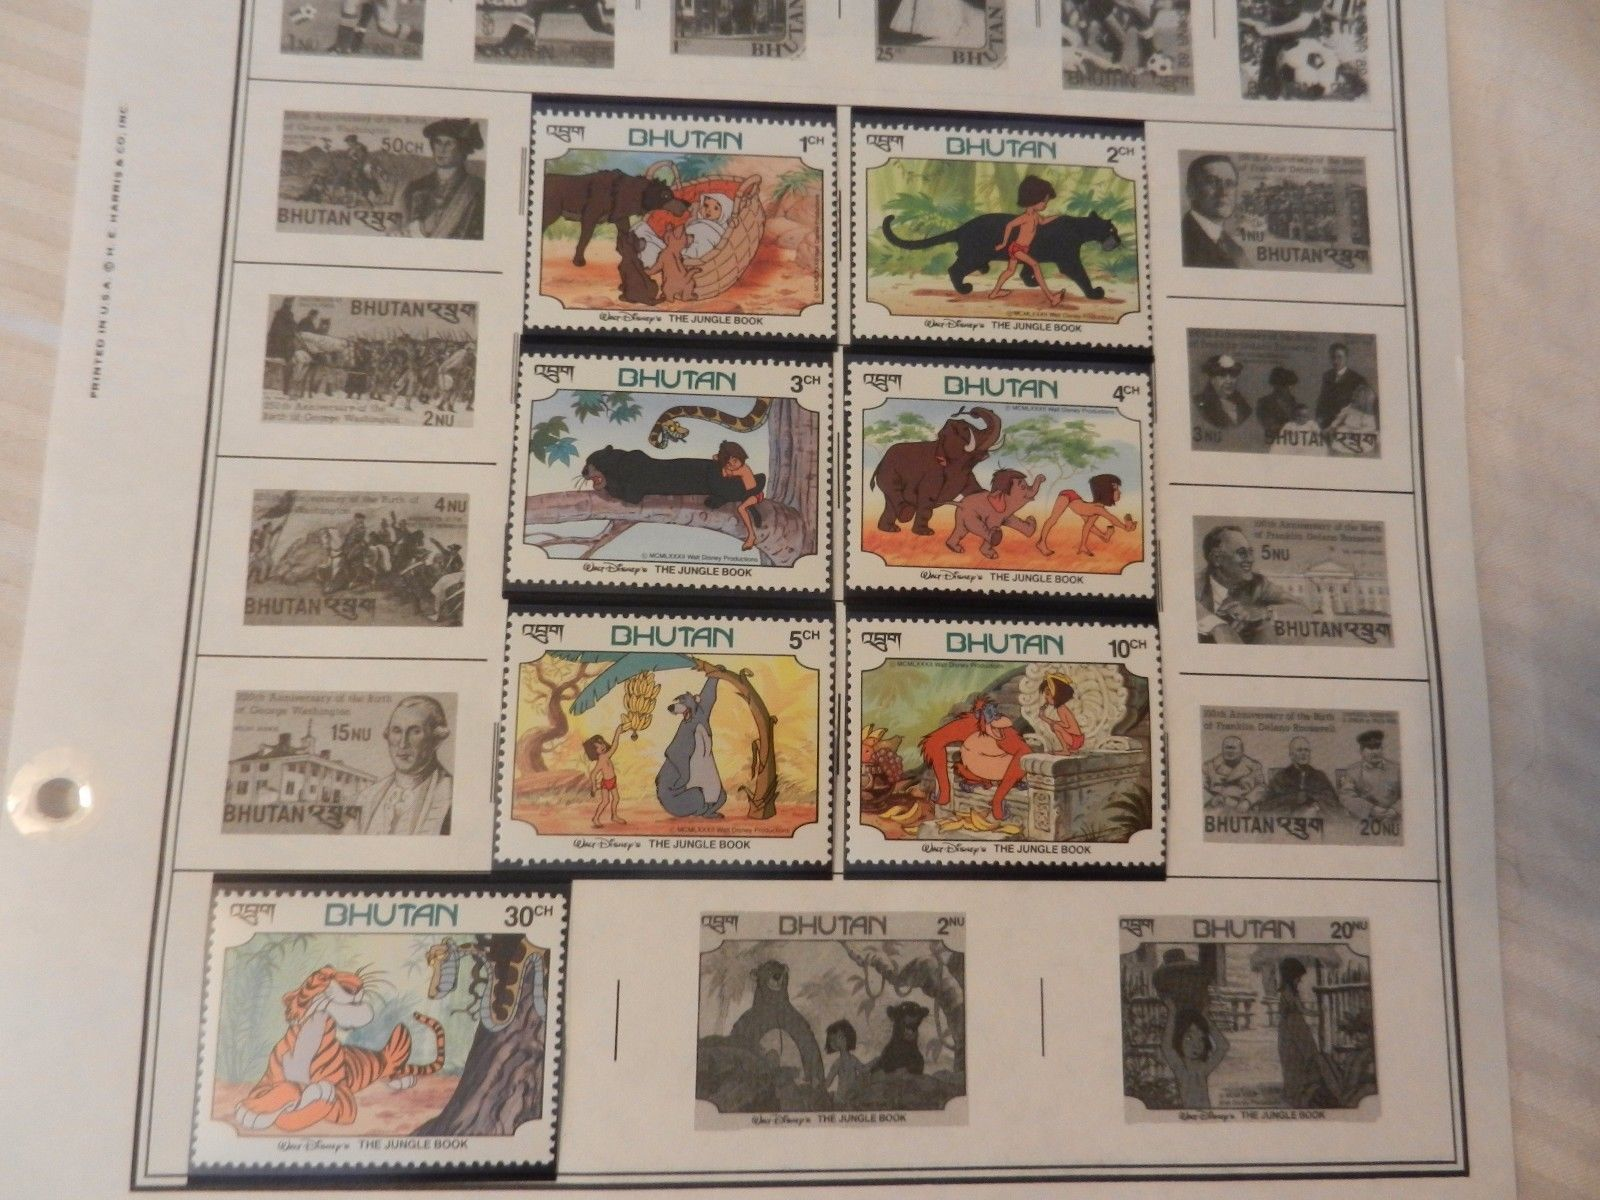 Primary image for Set of 7 Disney Stamps 1982 from Bhutan The Jungle Book, MNH